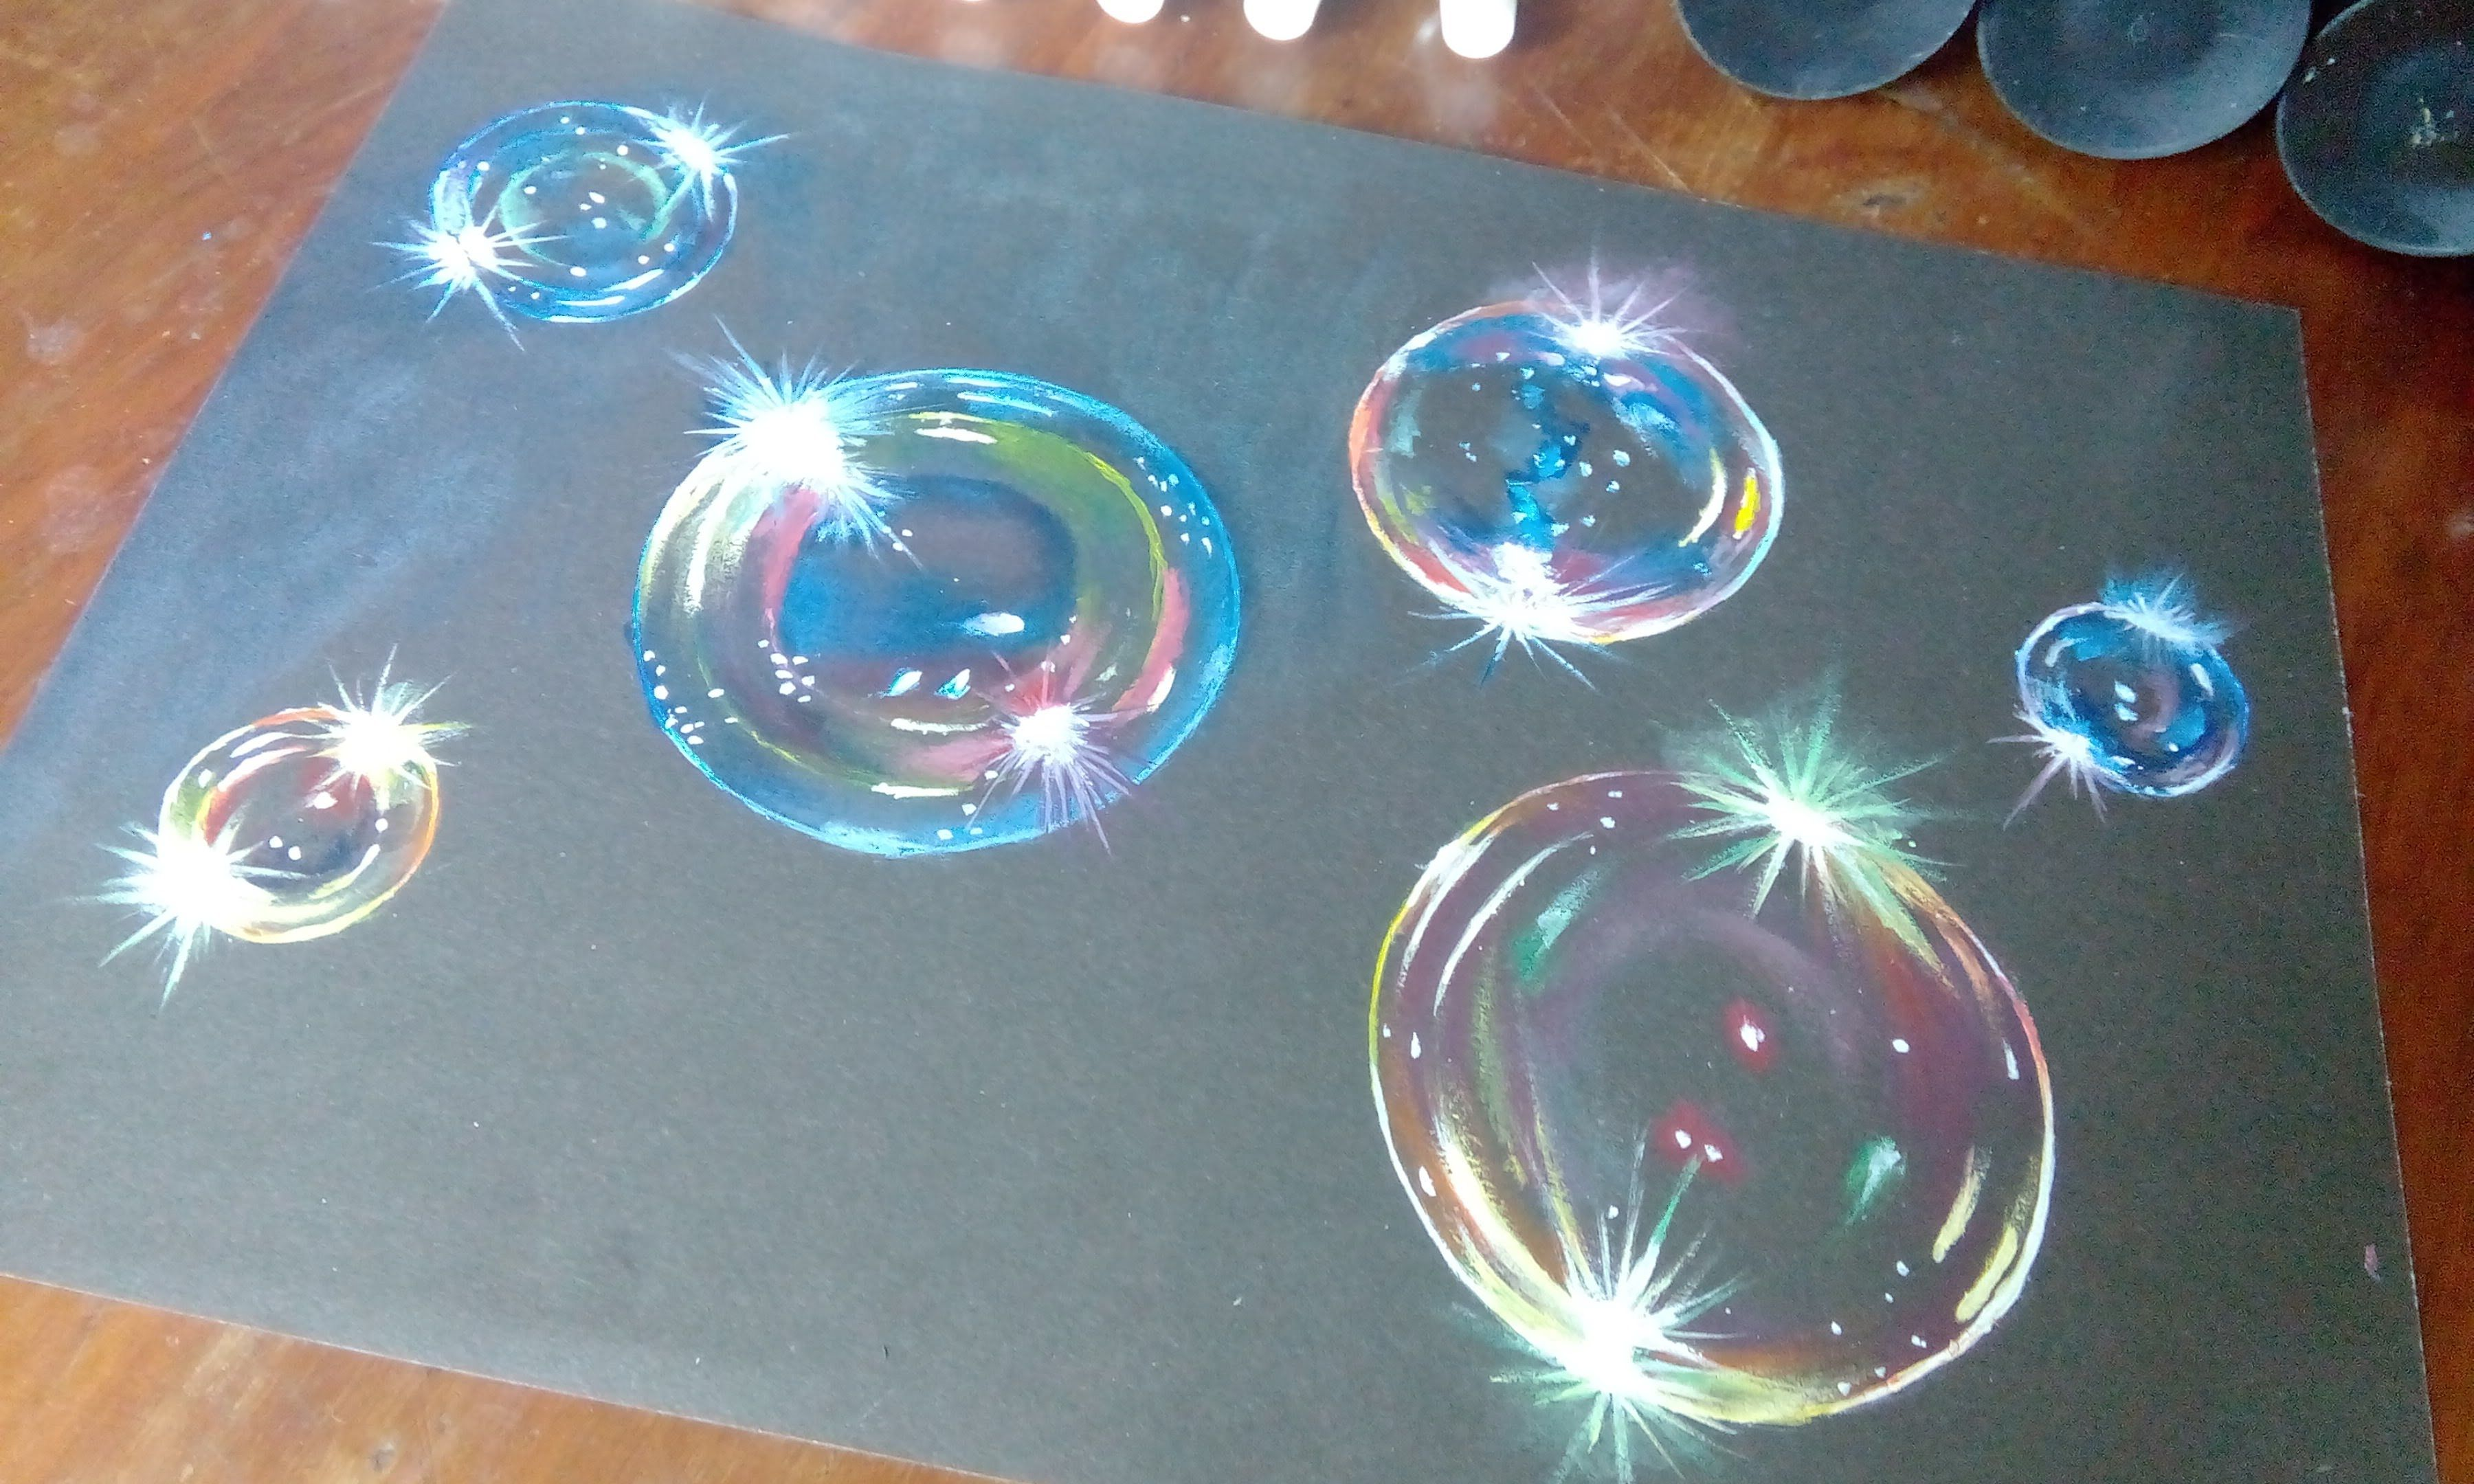 249 How To Paint Hyper Realistic Bubbles Acrylic Painting Tutorial